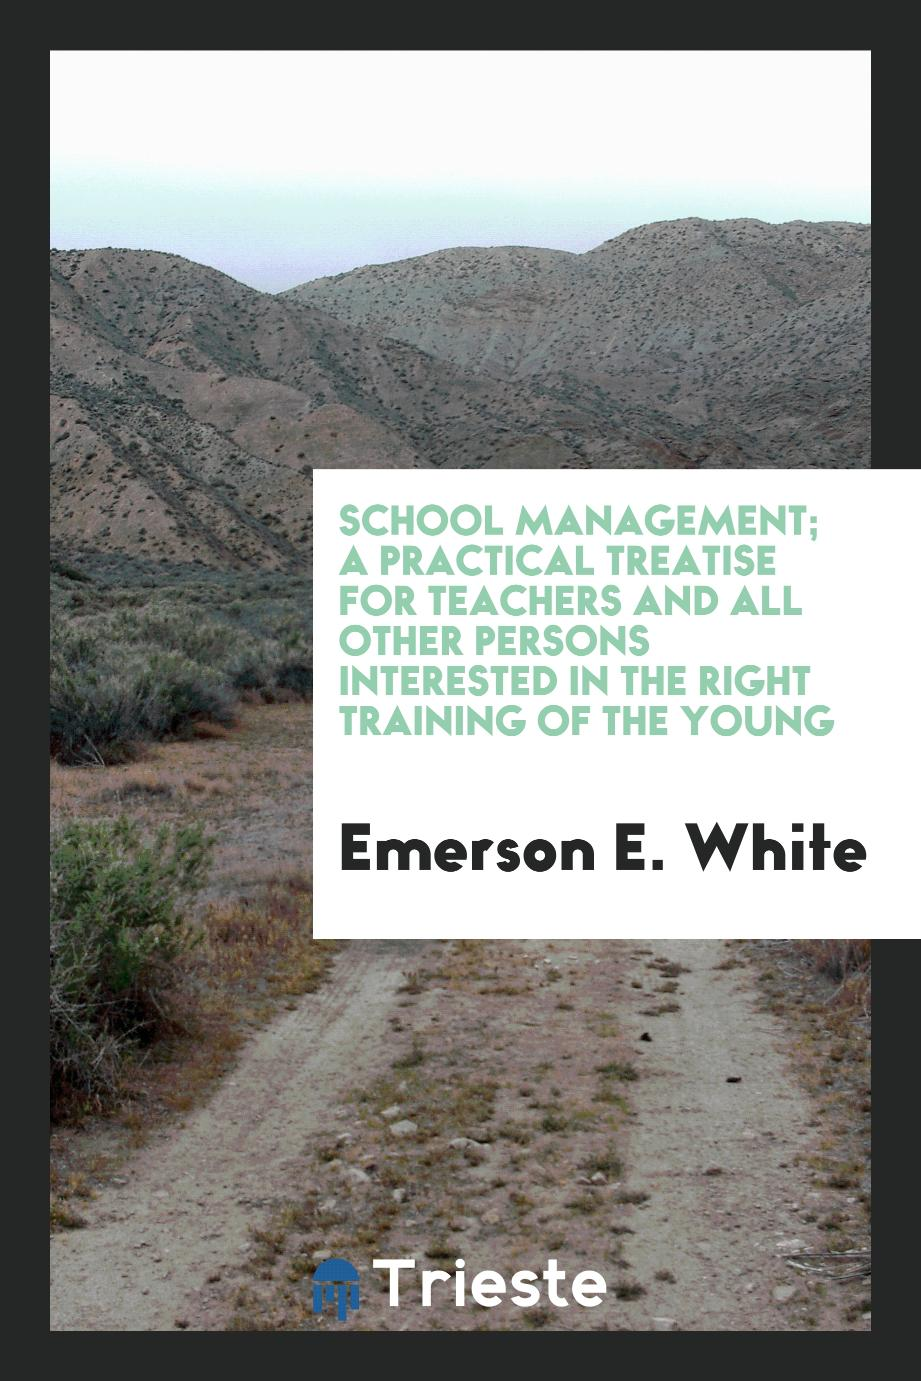 School Management; A Practical Treatise for Teachers and all Other Persons Interested in the Right Training of the Young